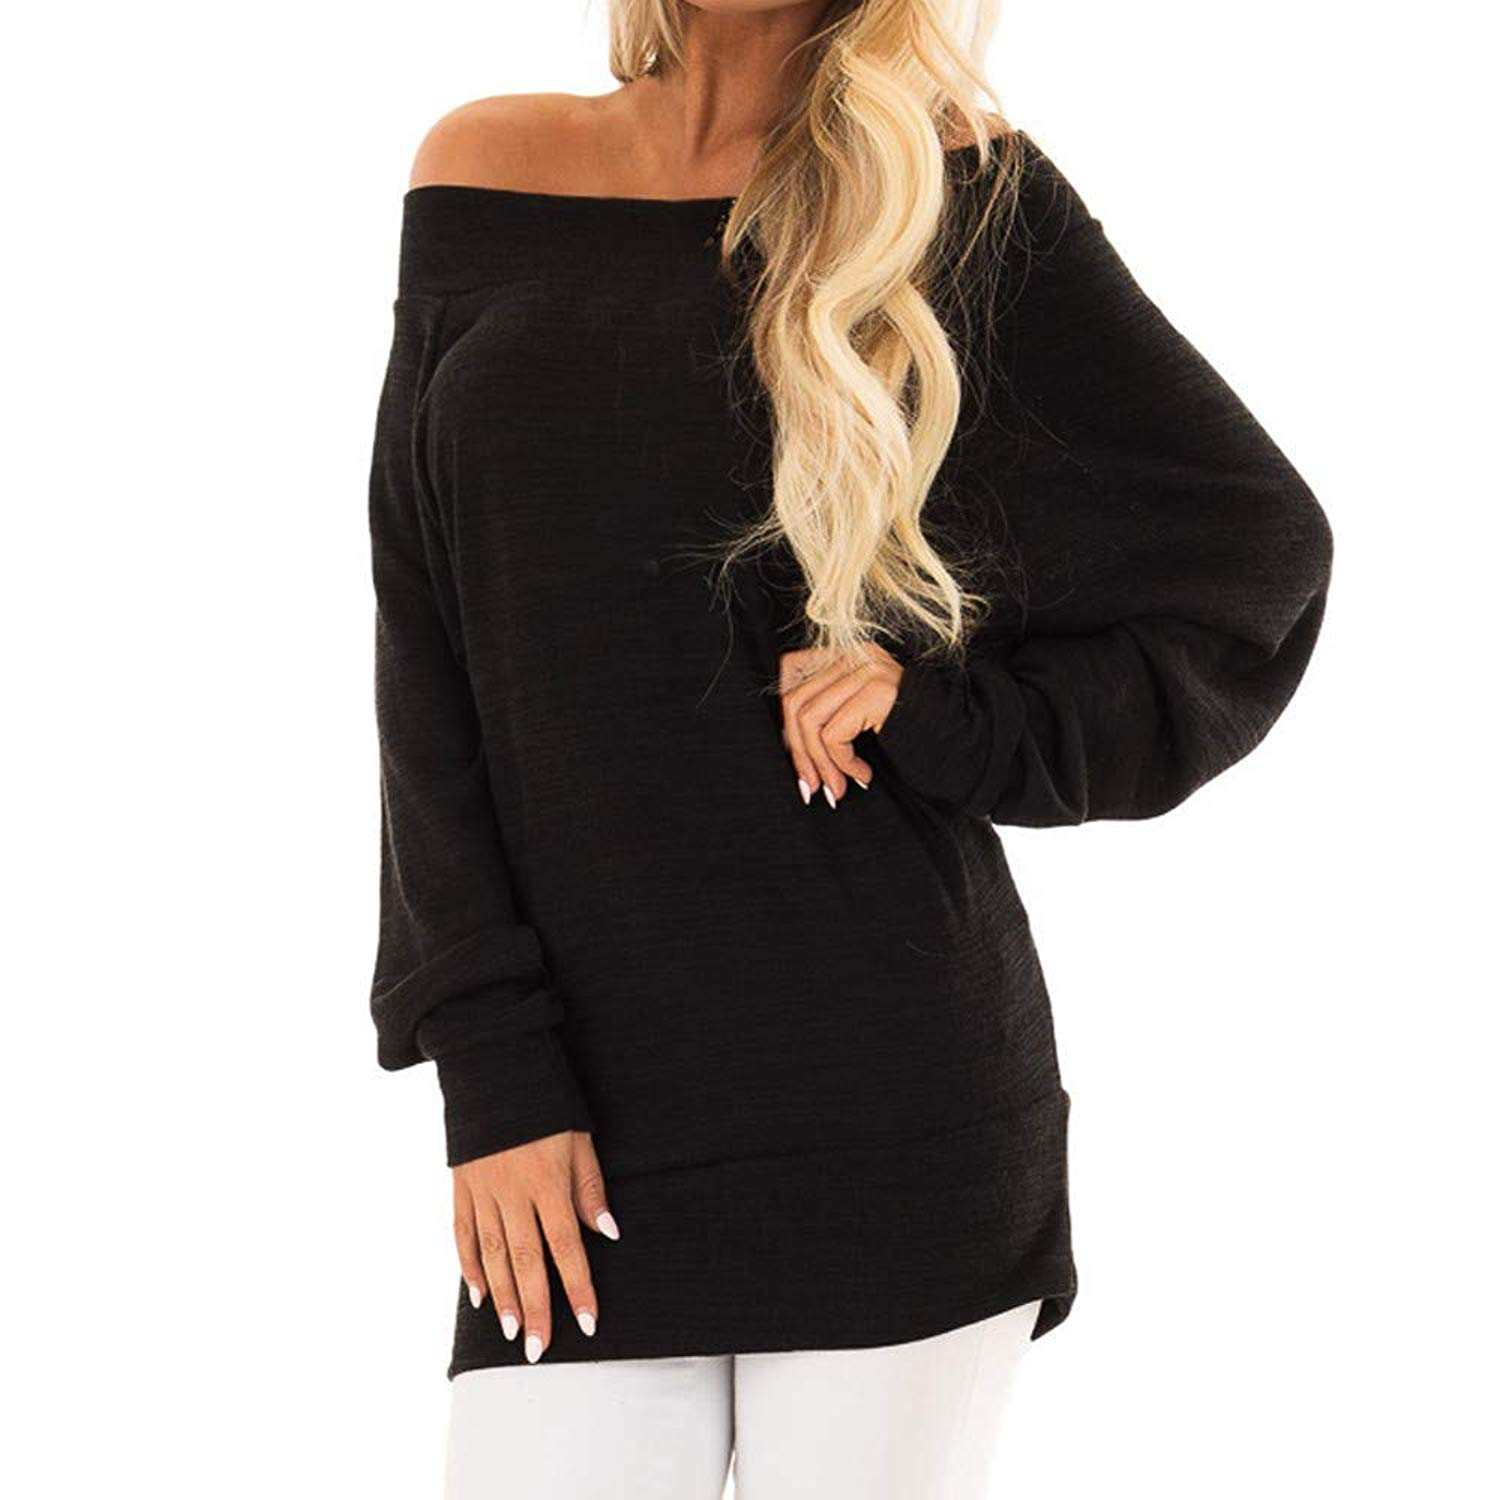 Snowfoller Women Off Shoulder Long Pullover Shirt Casual Long Sleeve Loose Tunics Tops Autumn Blouse